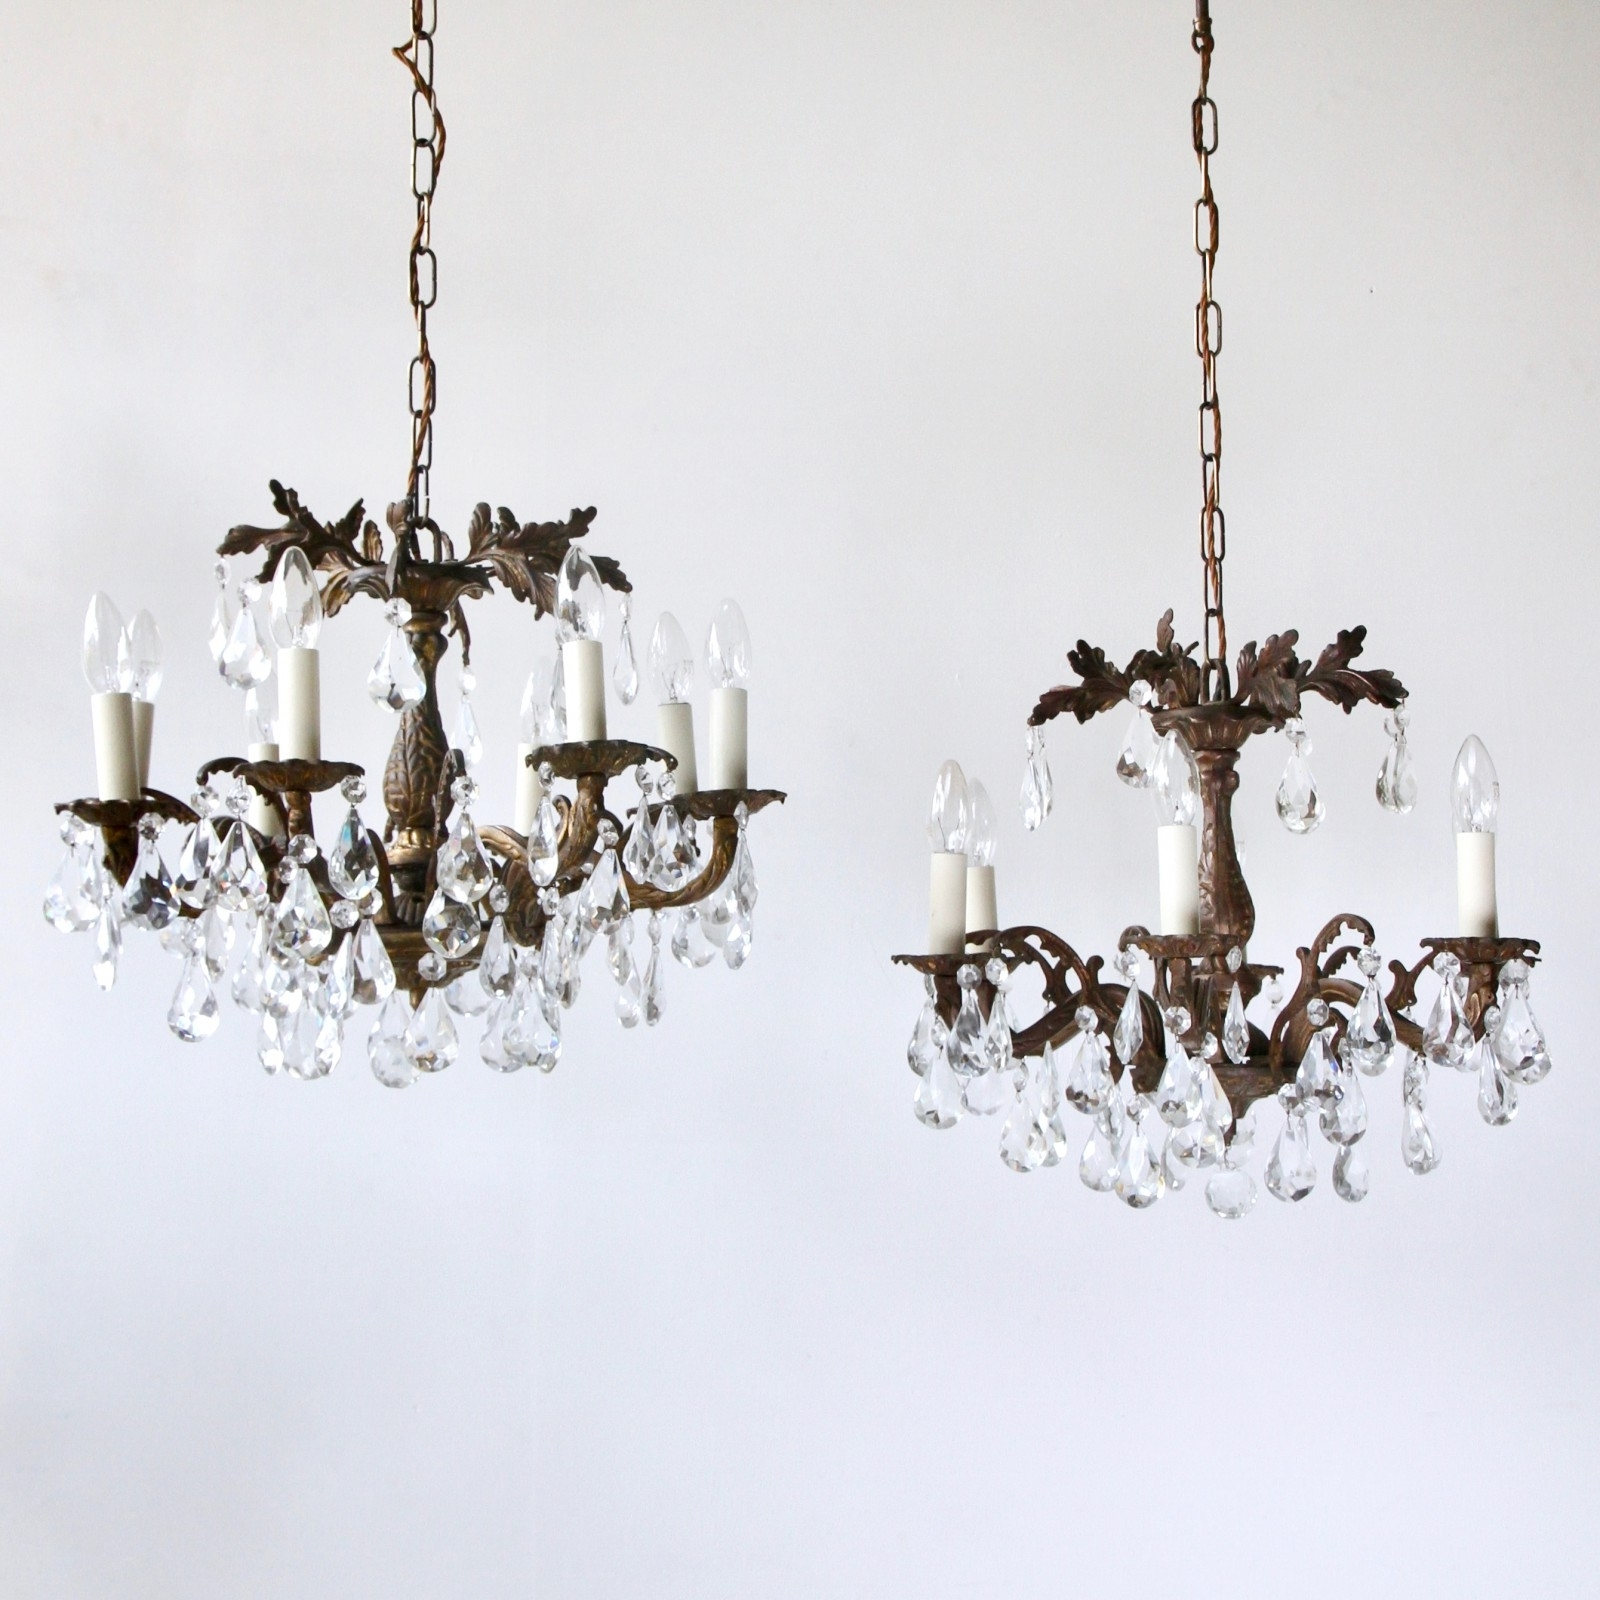 Newest Ornate Chandeliers With Regard To Ornate Brass Chandeliers Dressed In Cut Crystal Pear Drops (View 8 of 20)